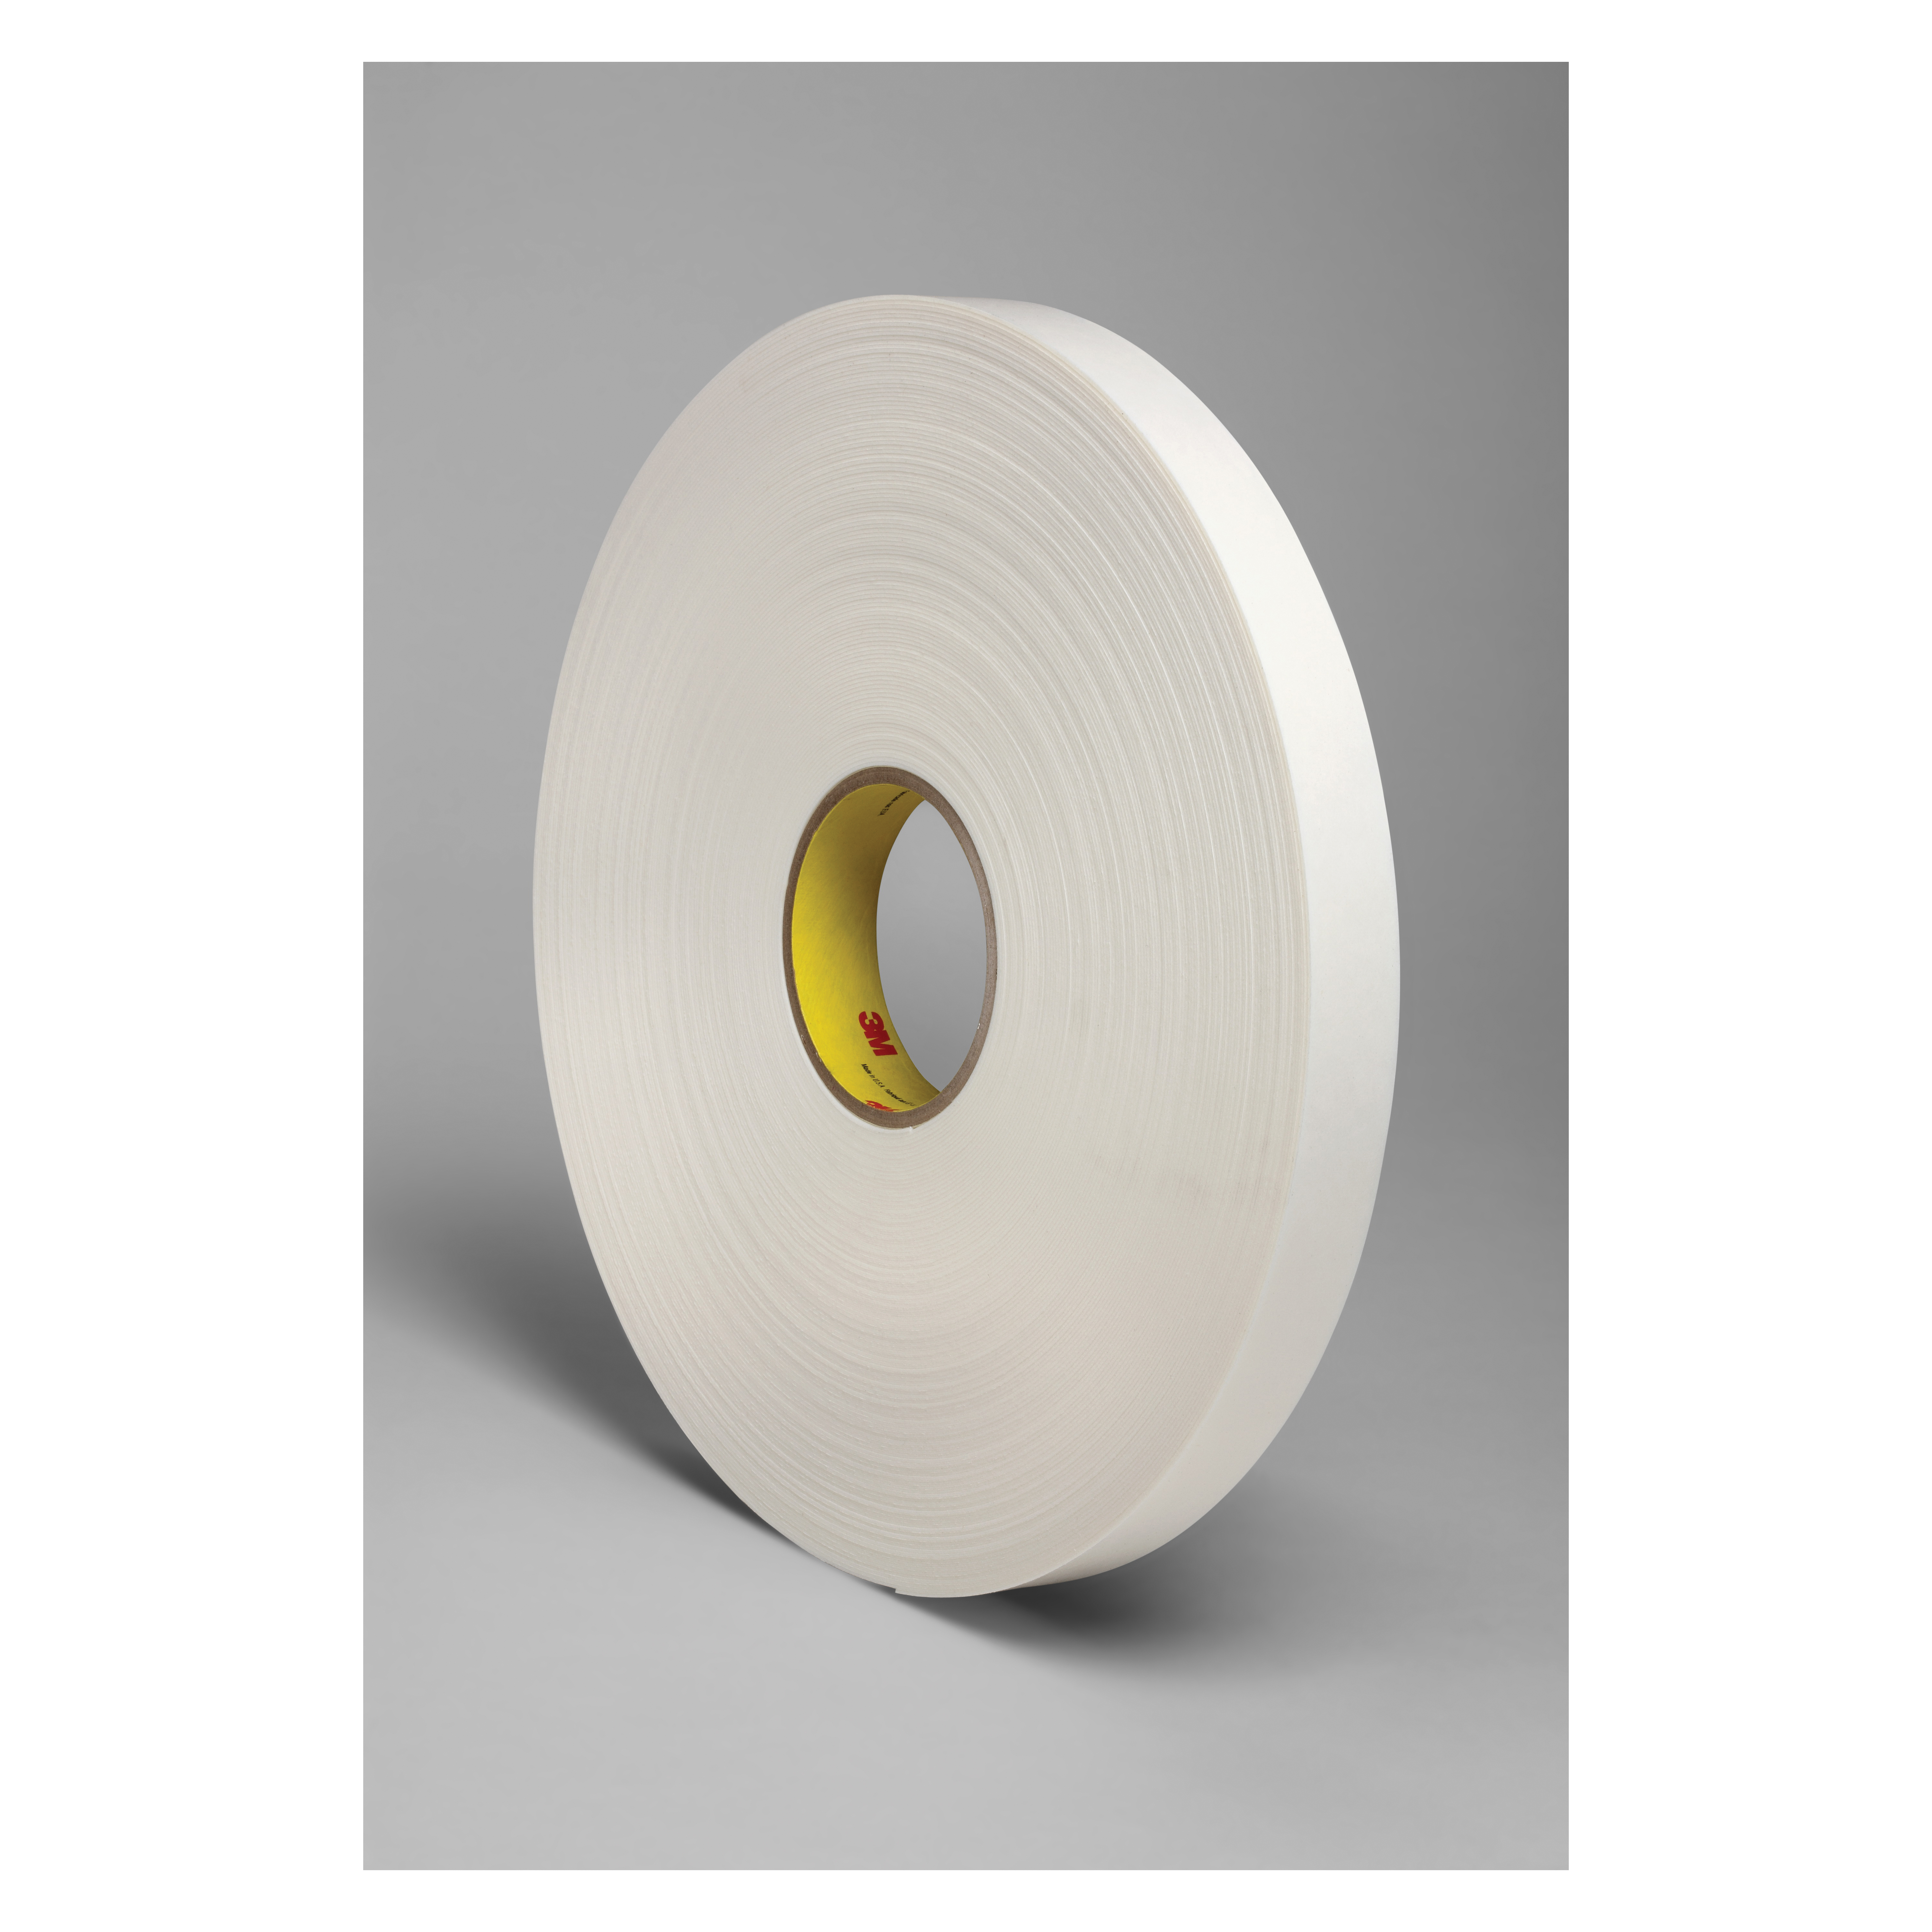 3M™ 021200-24311 Double Coated Tape, 72 yd L x 1 in W, 31 mil THK, Rubber Adhesive, Polyethylene Foam Backing, White